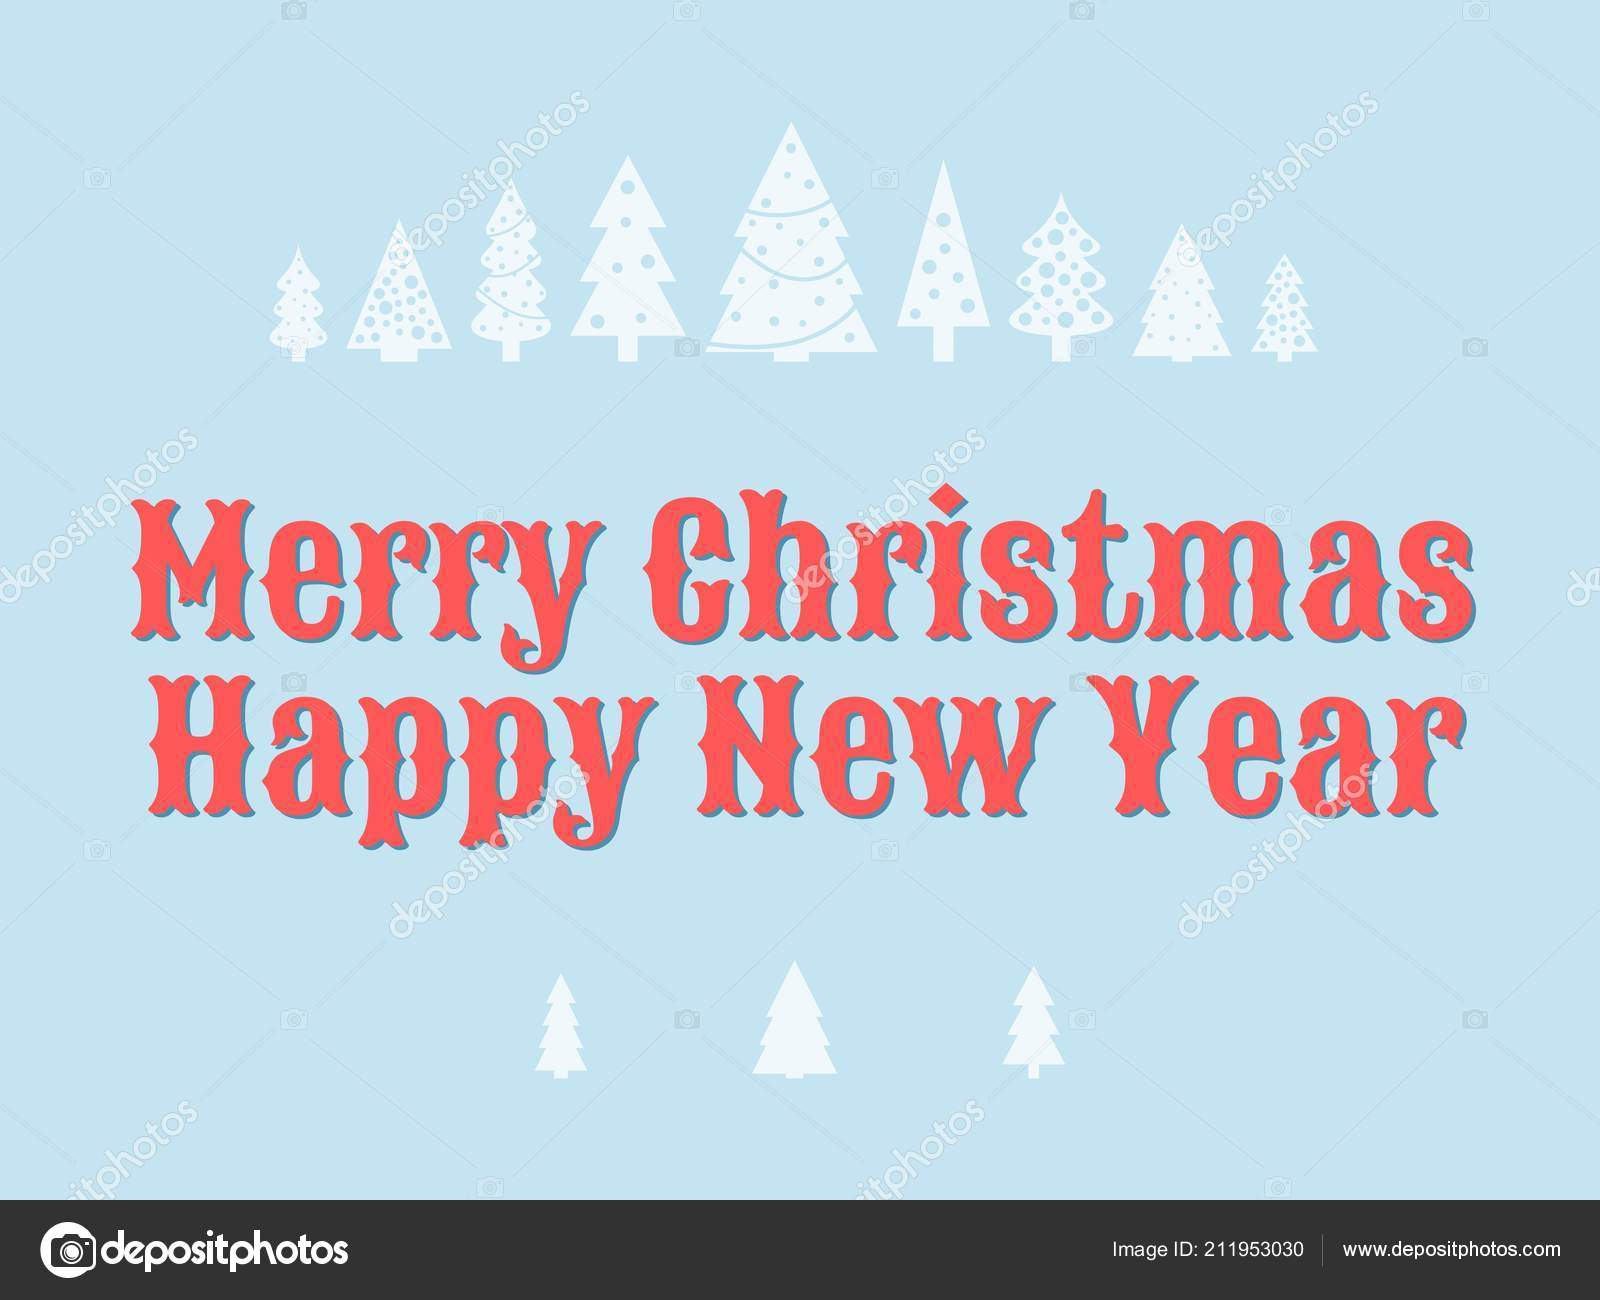 merry christmas happy new year wishes greeting card template stock vector